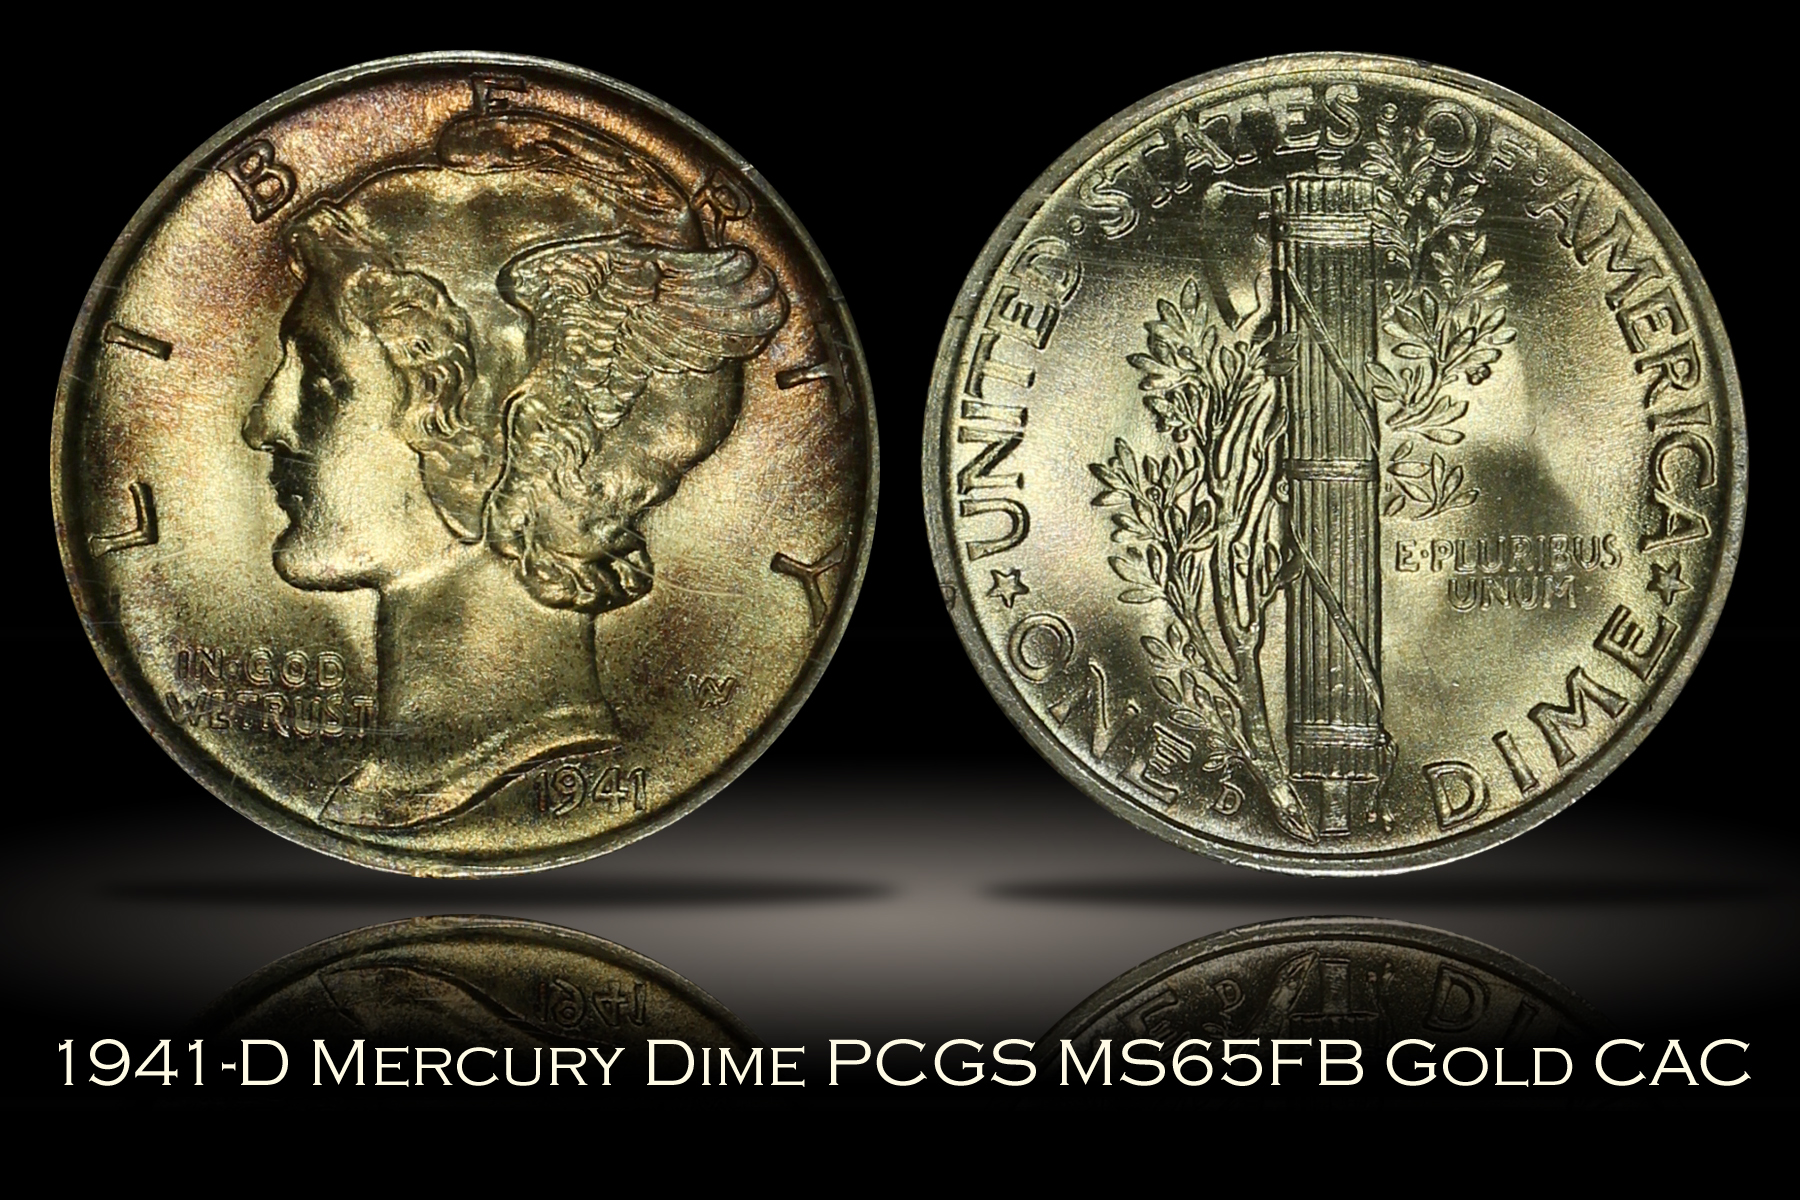 1941-D Mercury Dime PCGS MS65FB OGH Rattler GOLD CAC